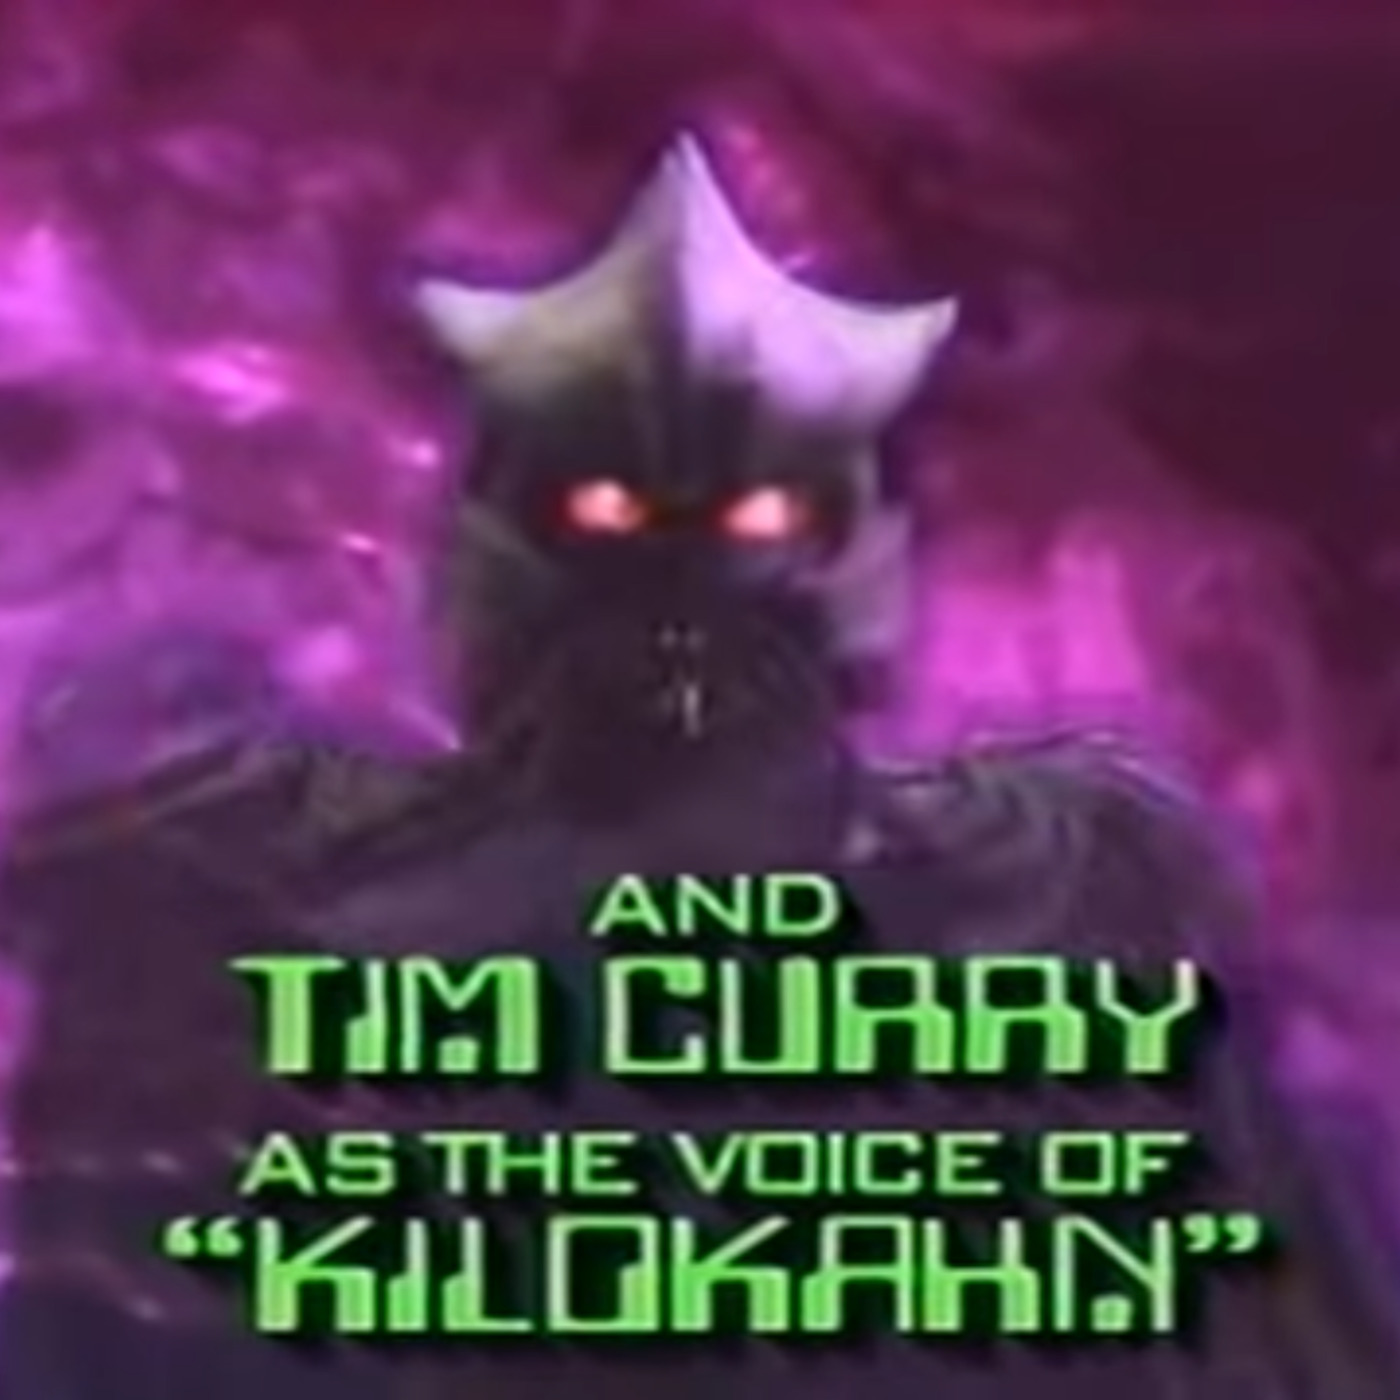 Going Digital: A Digimon Rewatch Podcast 170: S03EAF01: The Voice of Kilokahn